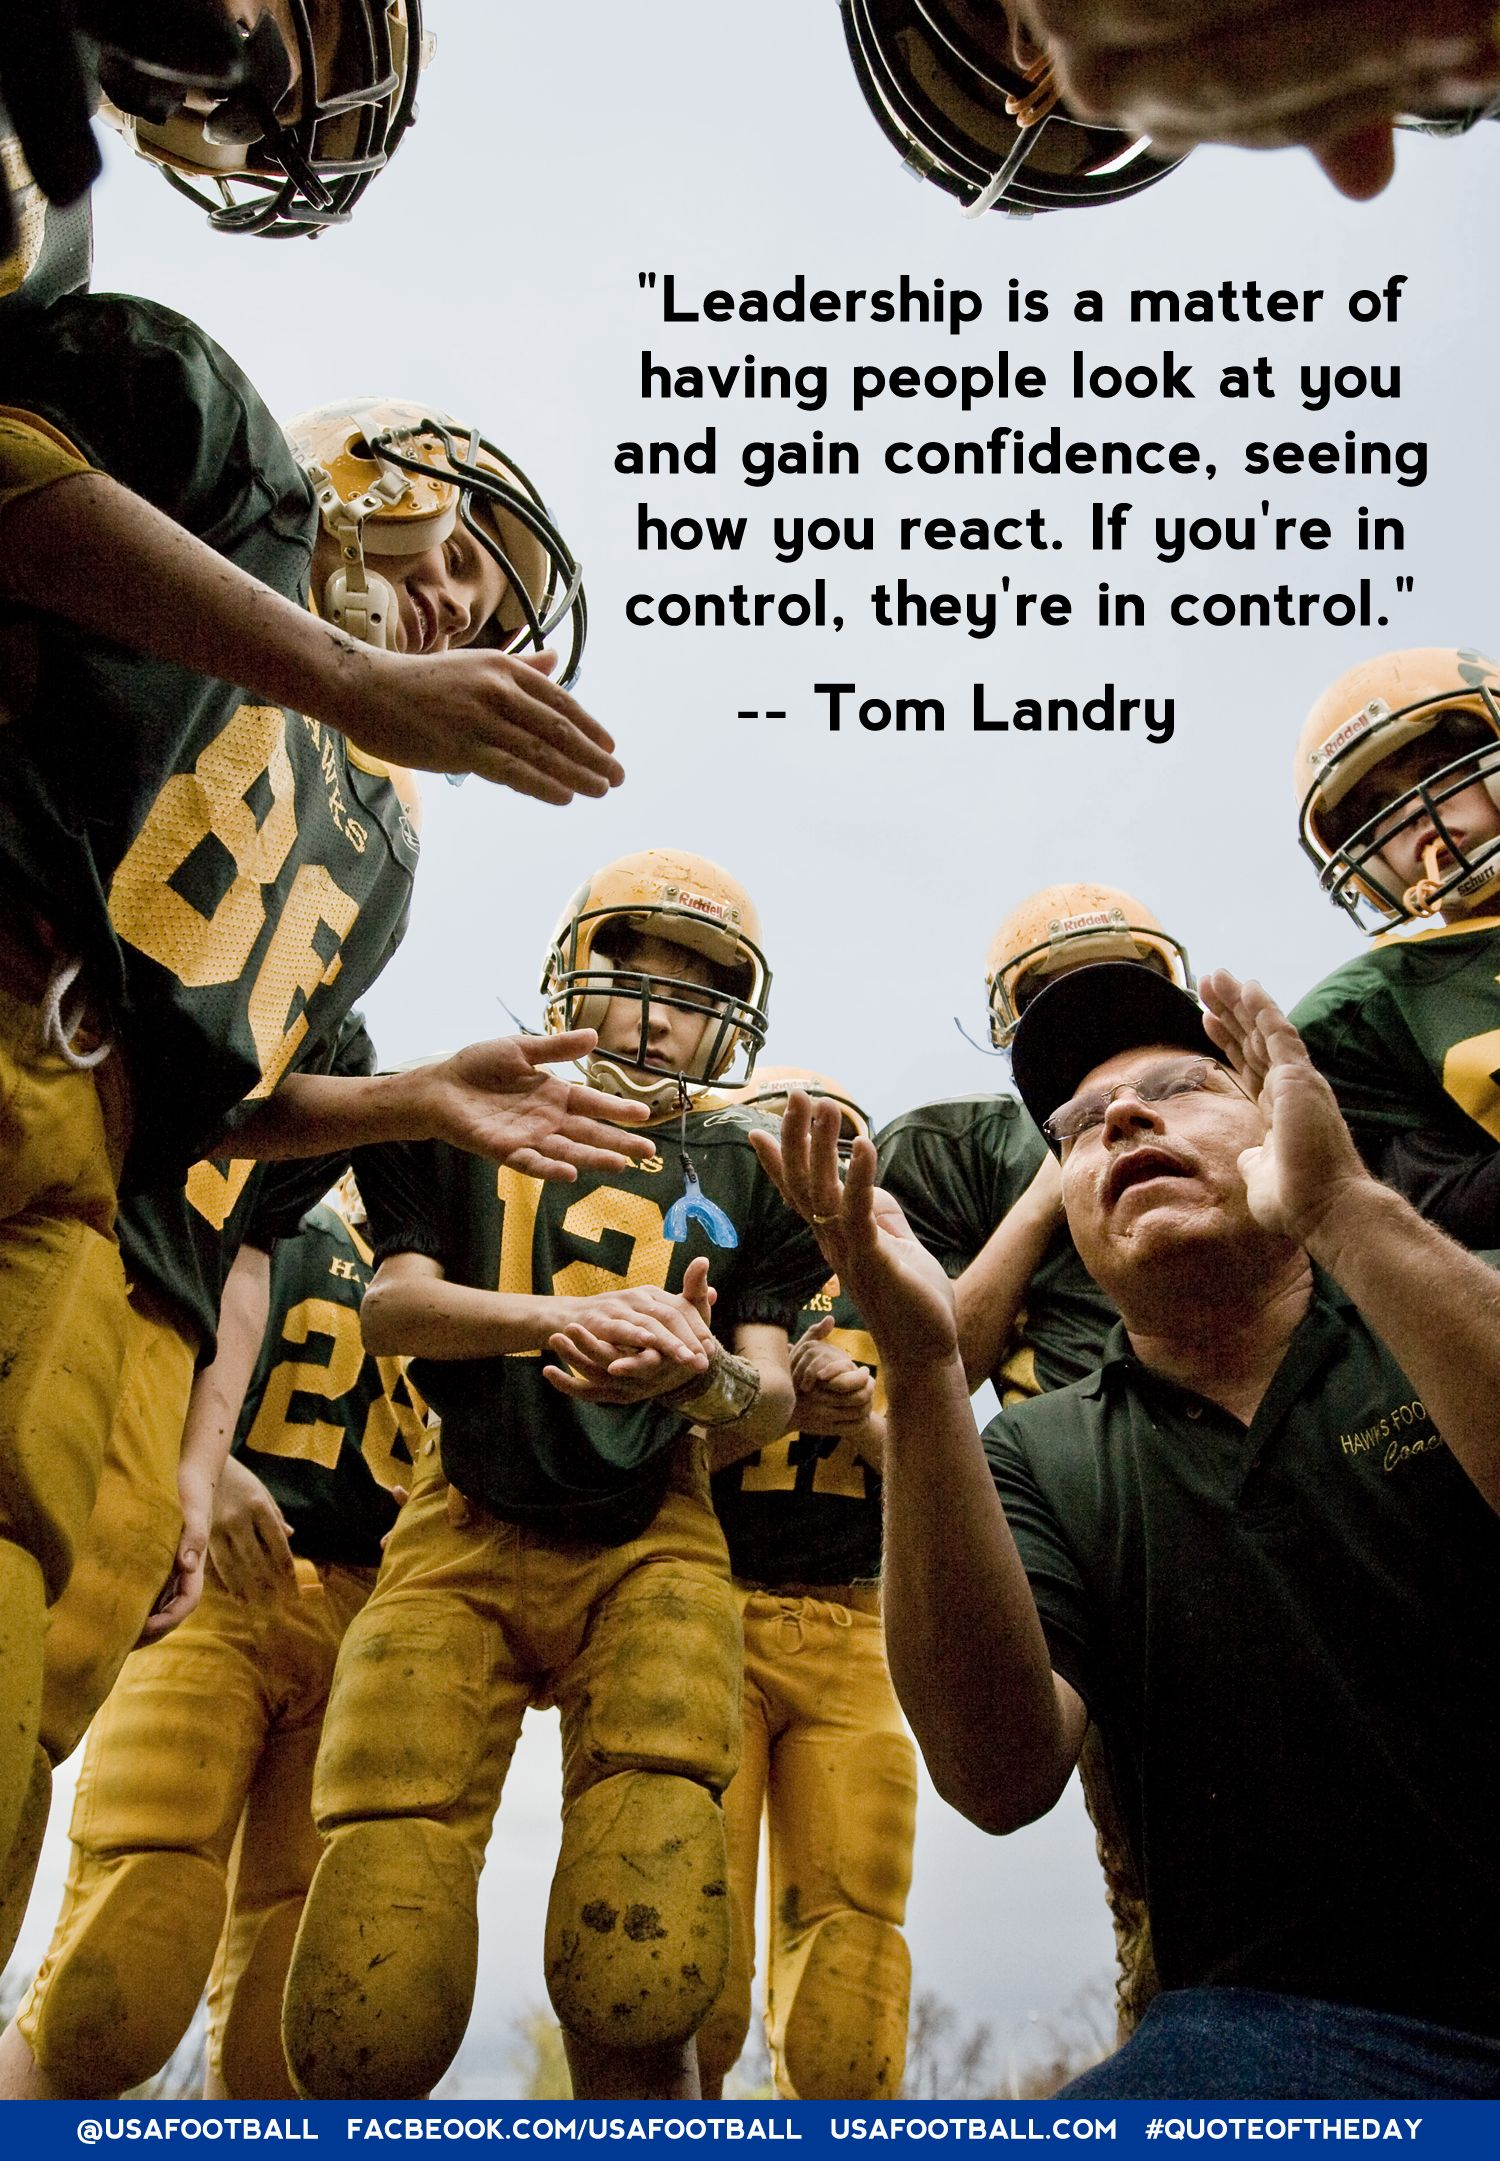 Coaches, the right attitude starts with you.